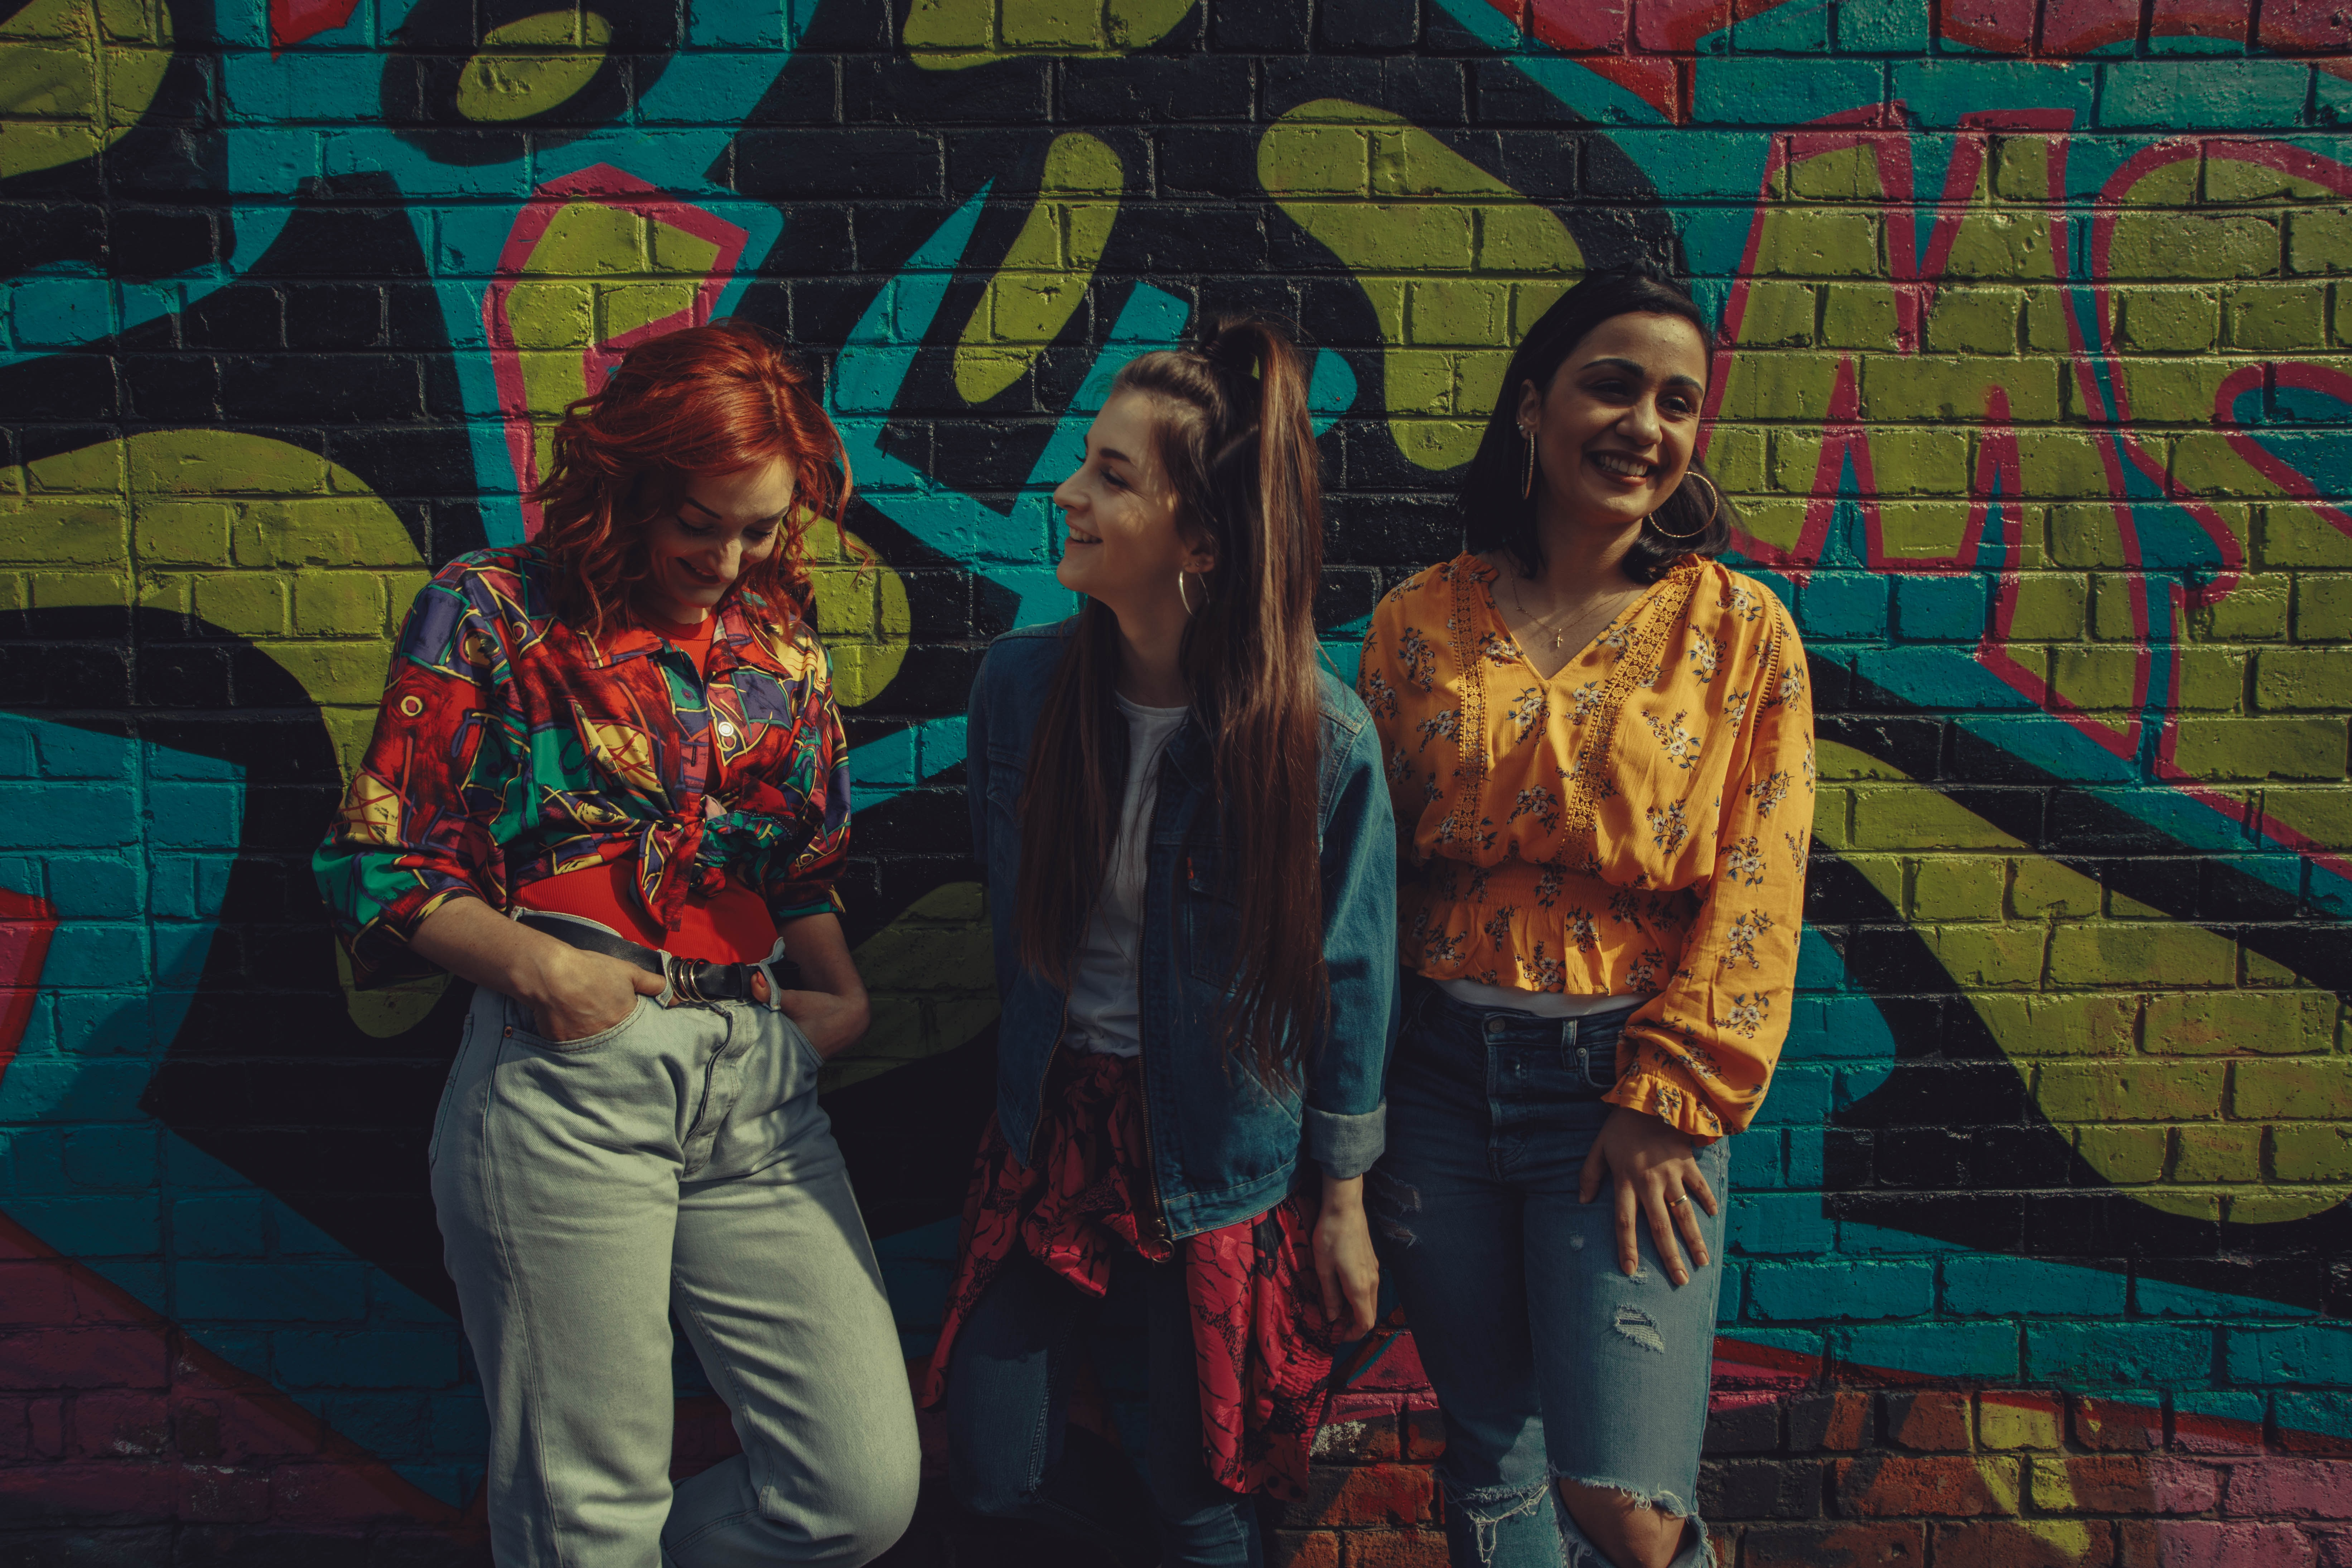 Three young women in colorful shirts and denim stand against a graffiti wall, they're all smiling. When you ask a non-believer friend to read the Bible with you, you can be sure that God's Word will speak to them in the way they personally need it to.